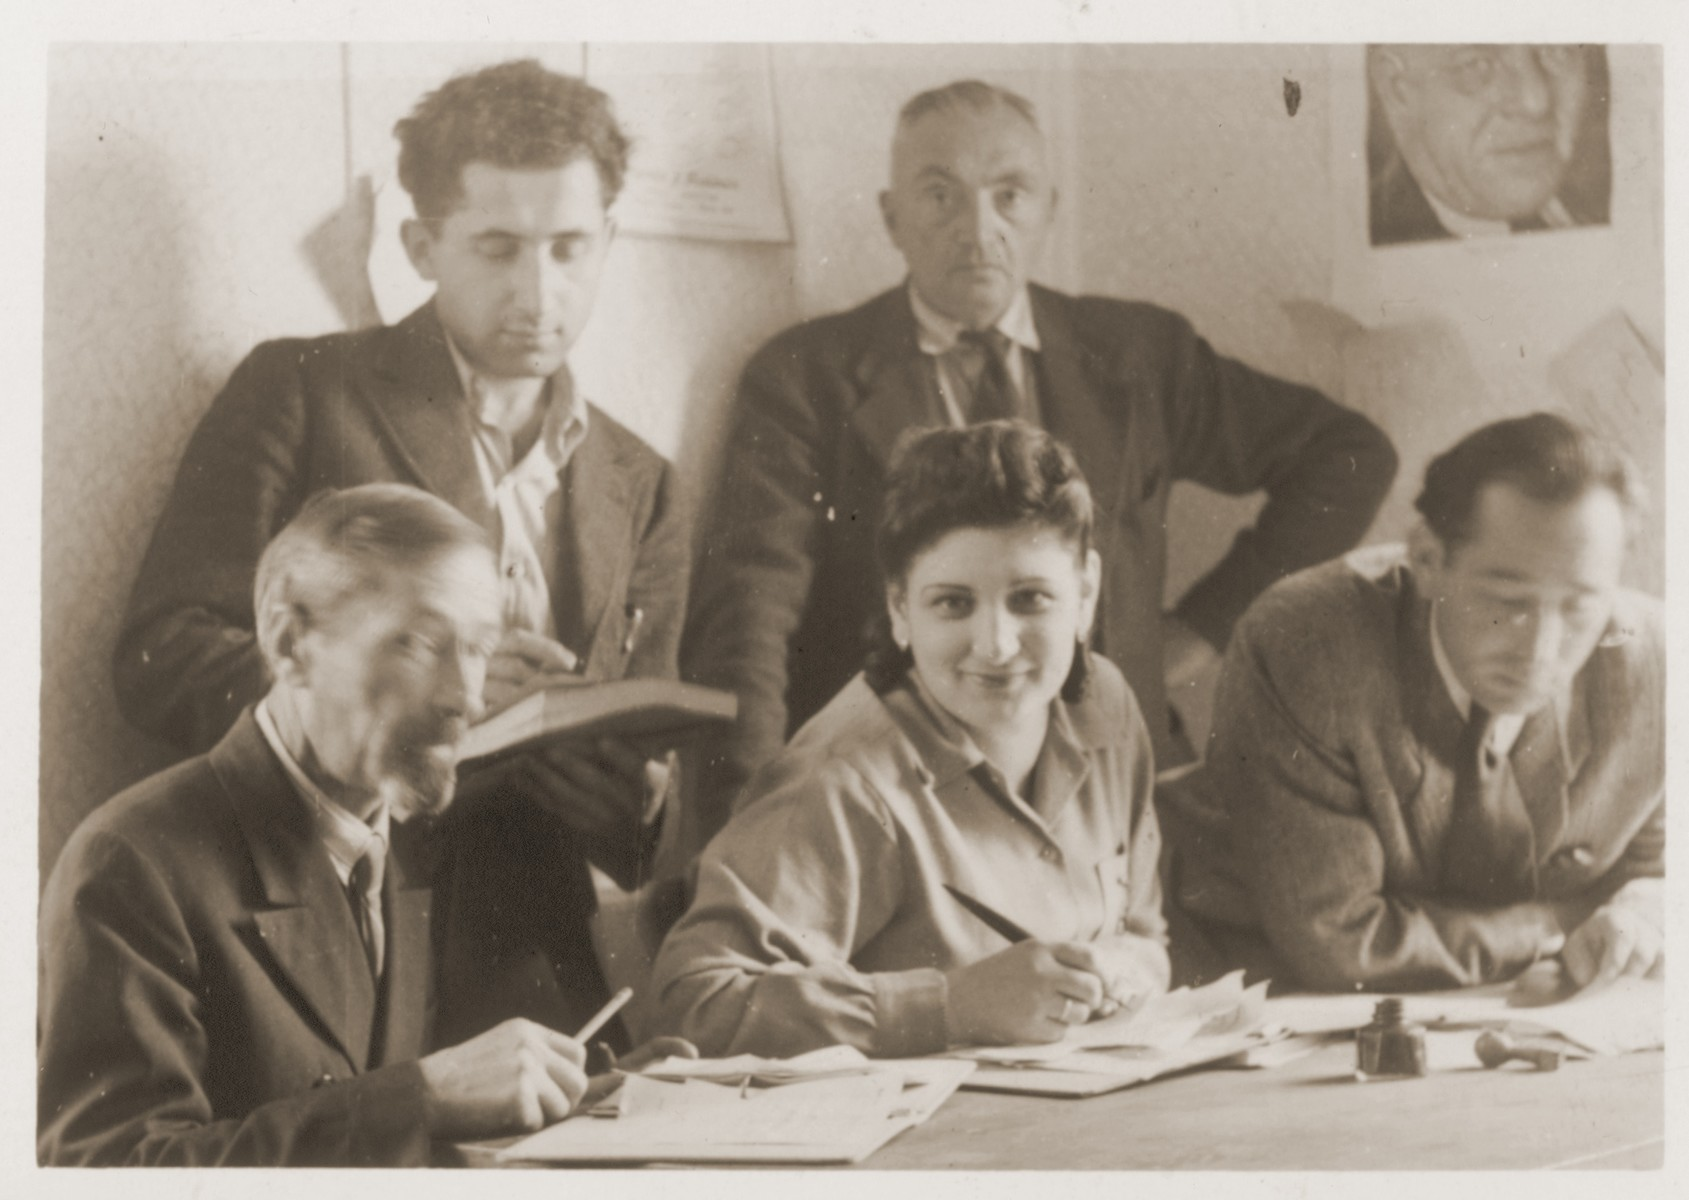 Members of the administrative staff of the Schlachtensee displaced persons camp pose in the office of UNRRA camp director Schwartzberg.  Shmuel (Miles) Lerman sits at the far right.